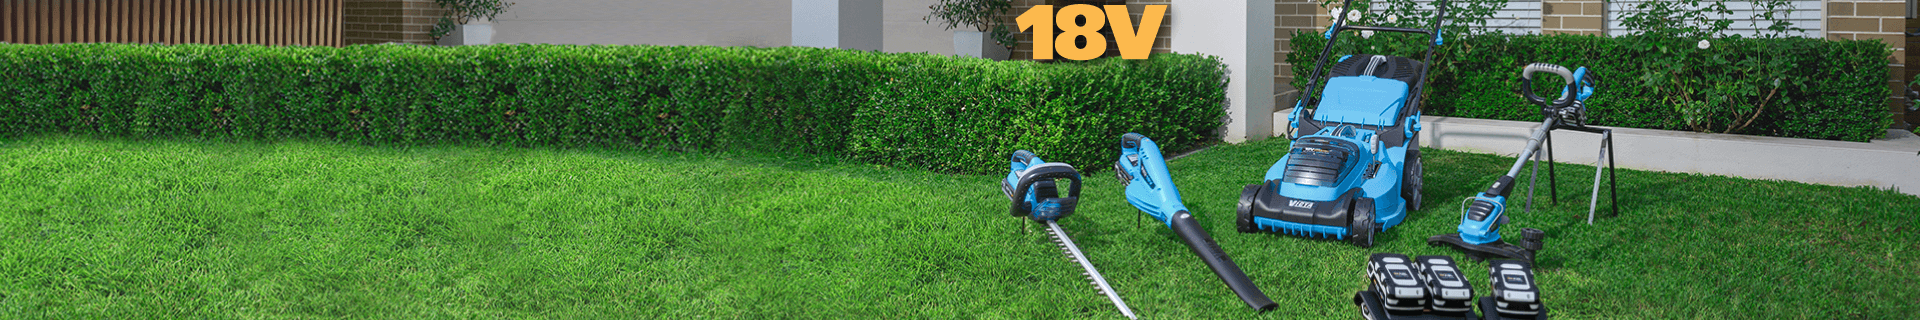 Lawn mower, leaf blower, hedge trimmer and line trimmer.